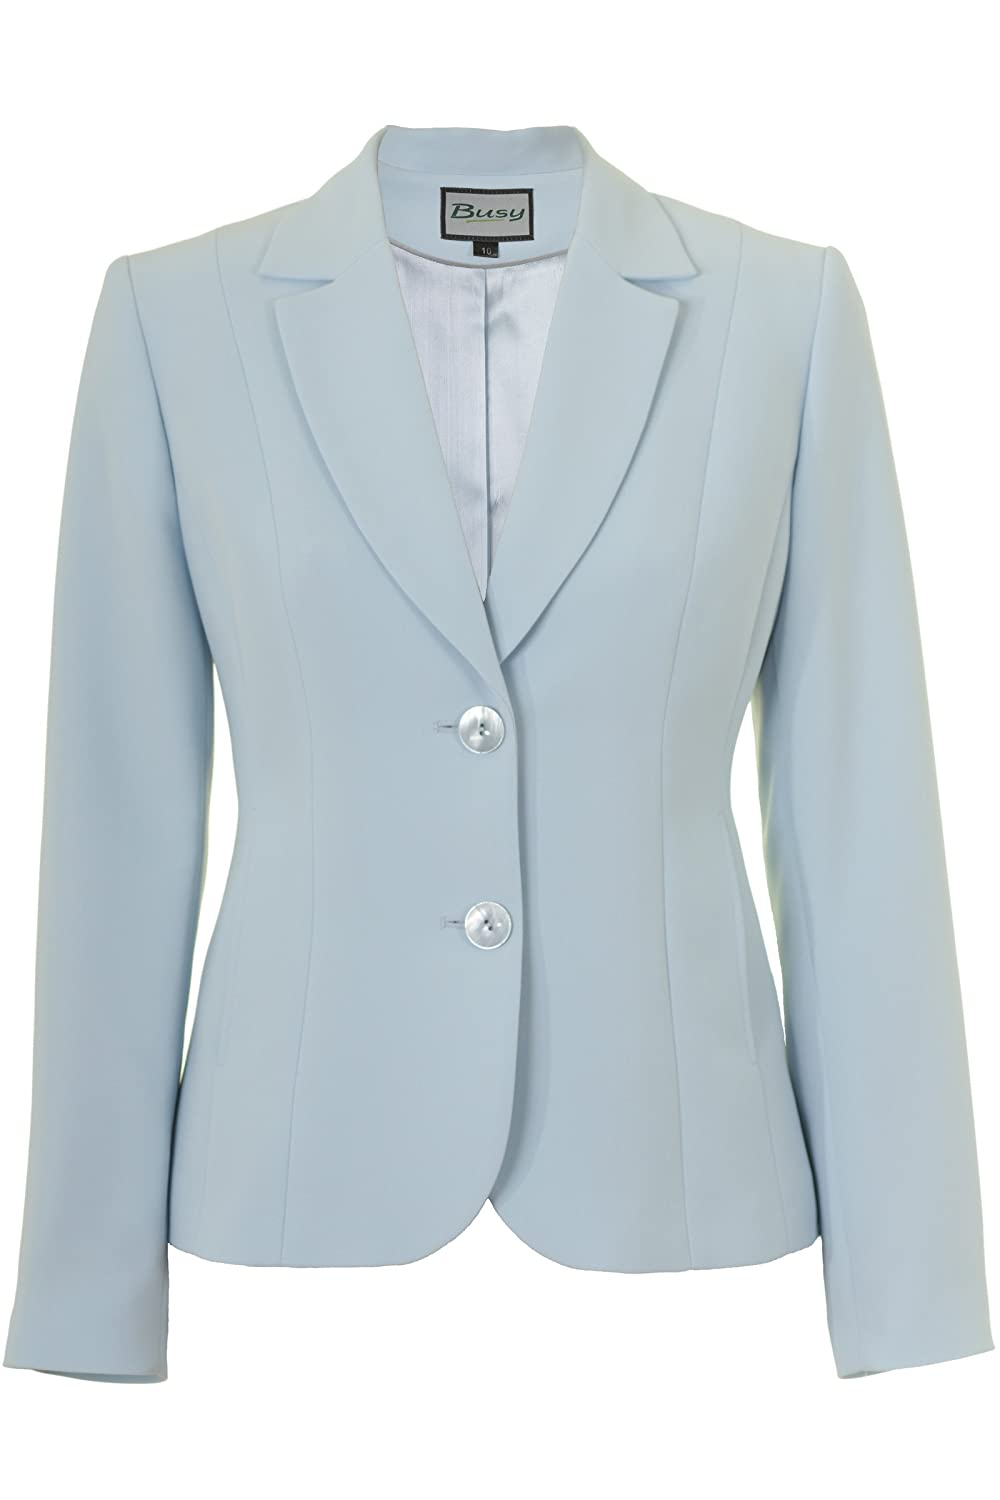 Busy Clothing Womens Light Blue Suit Jacket LightBlue44470